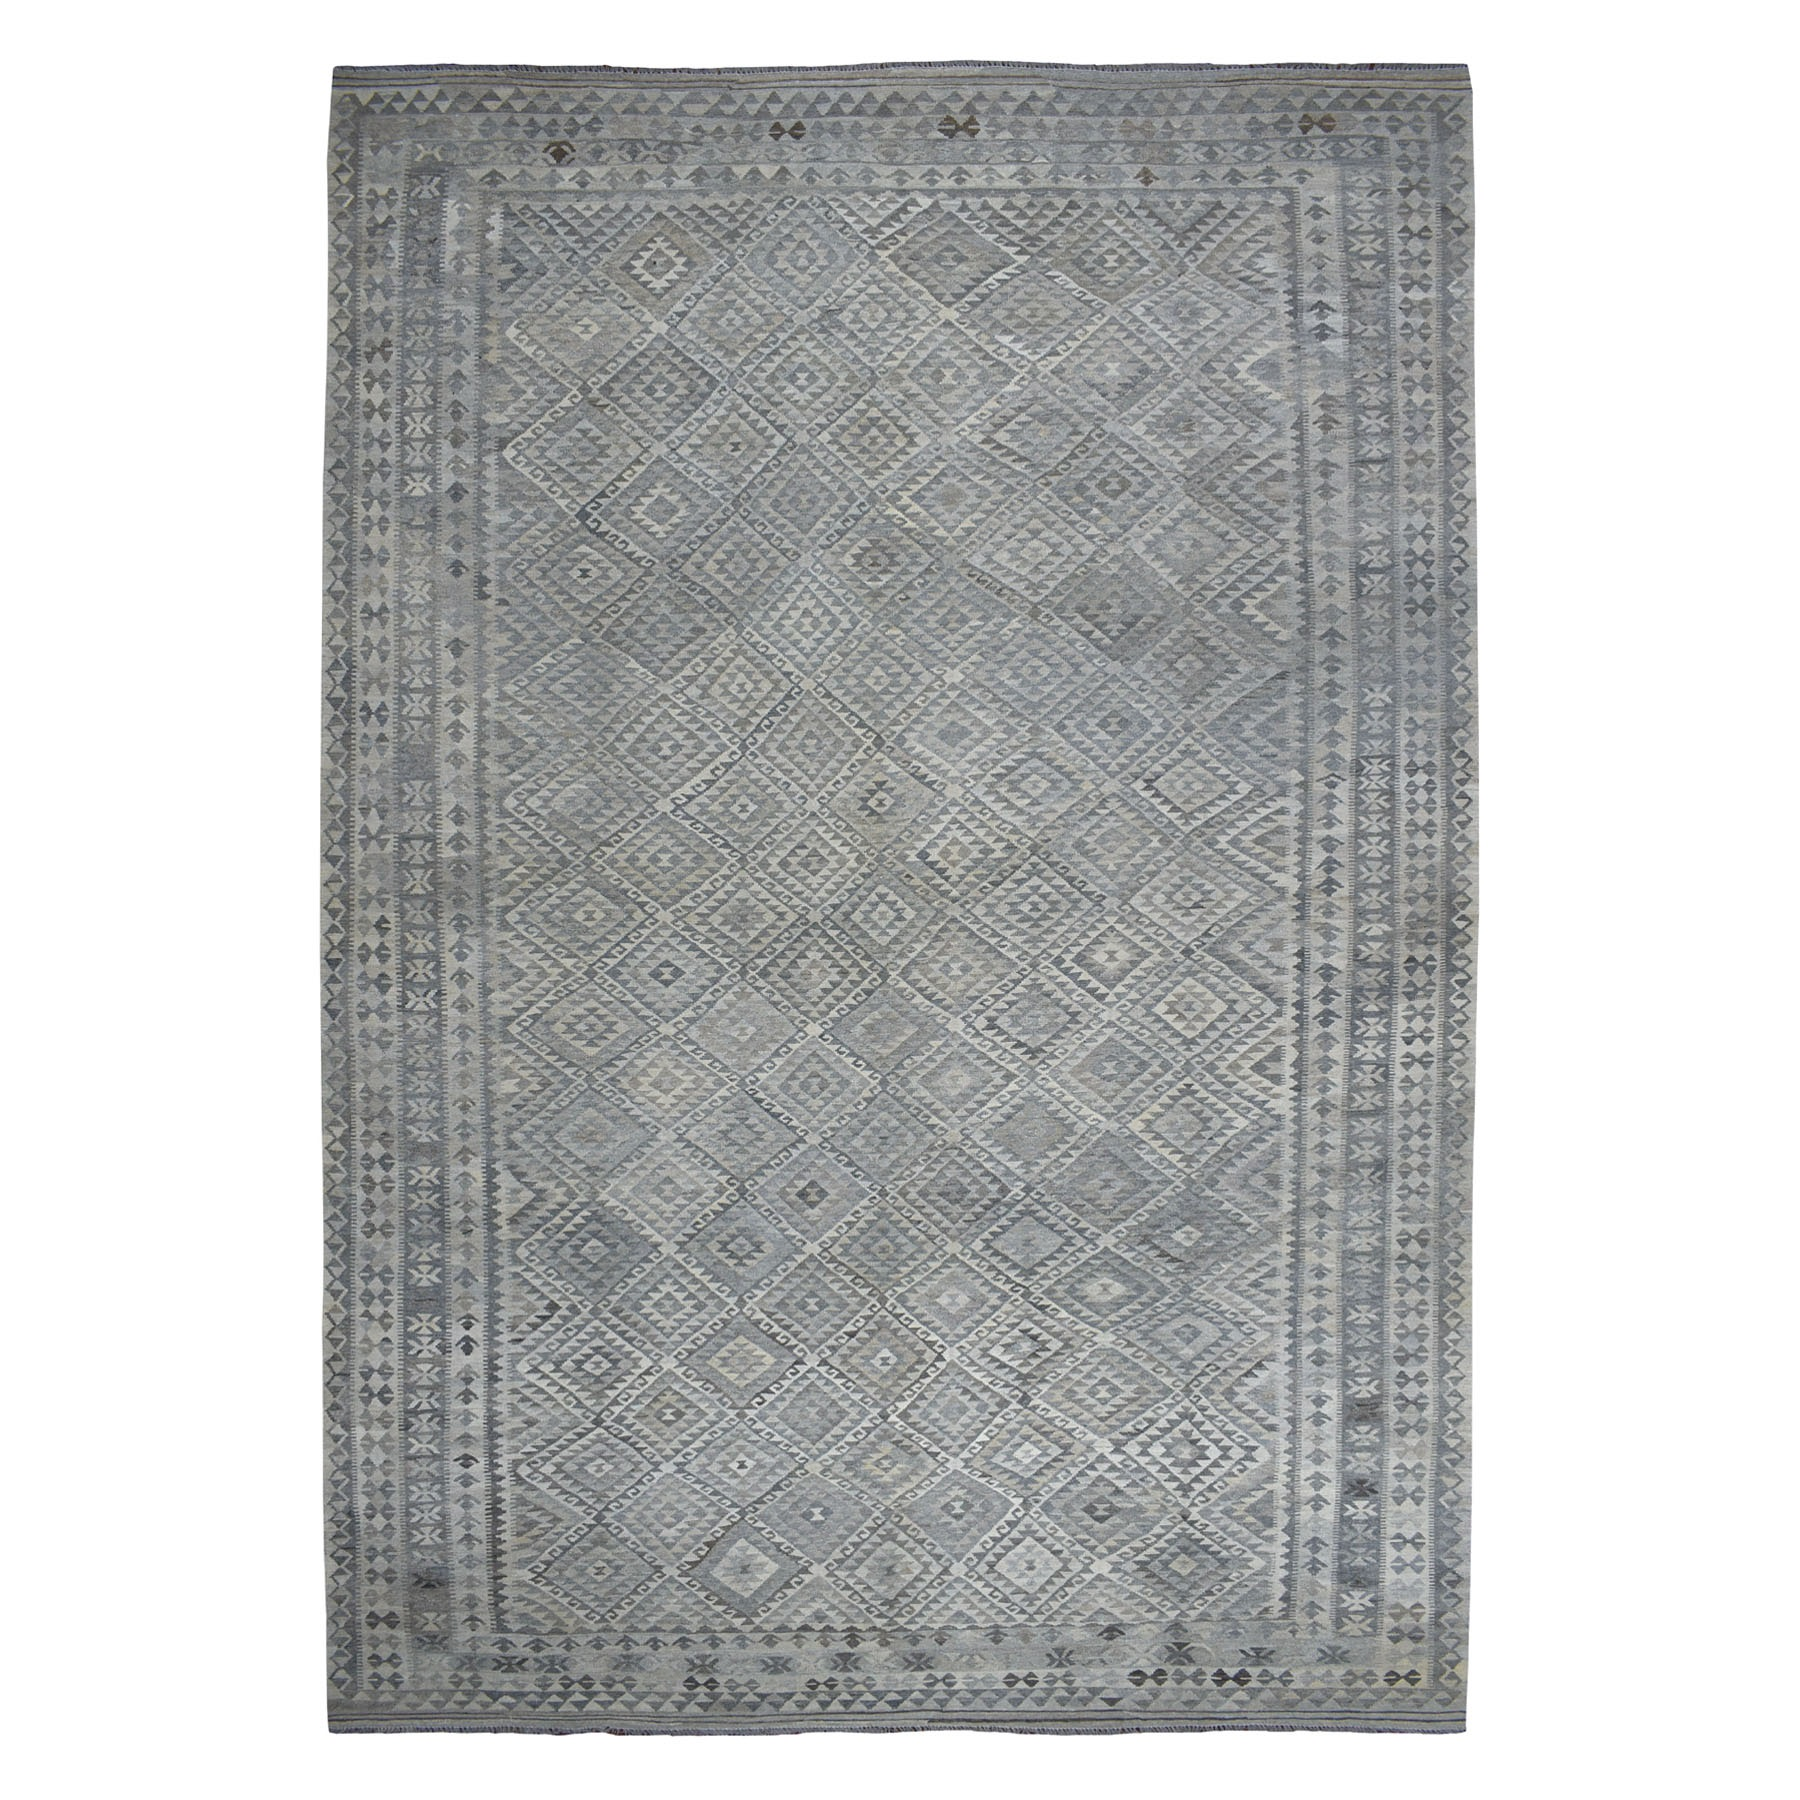 "9'9""x16'4"" Oversized Undyed Natural Wool Afghan Kilim Reversible Hand Woven Rug"